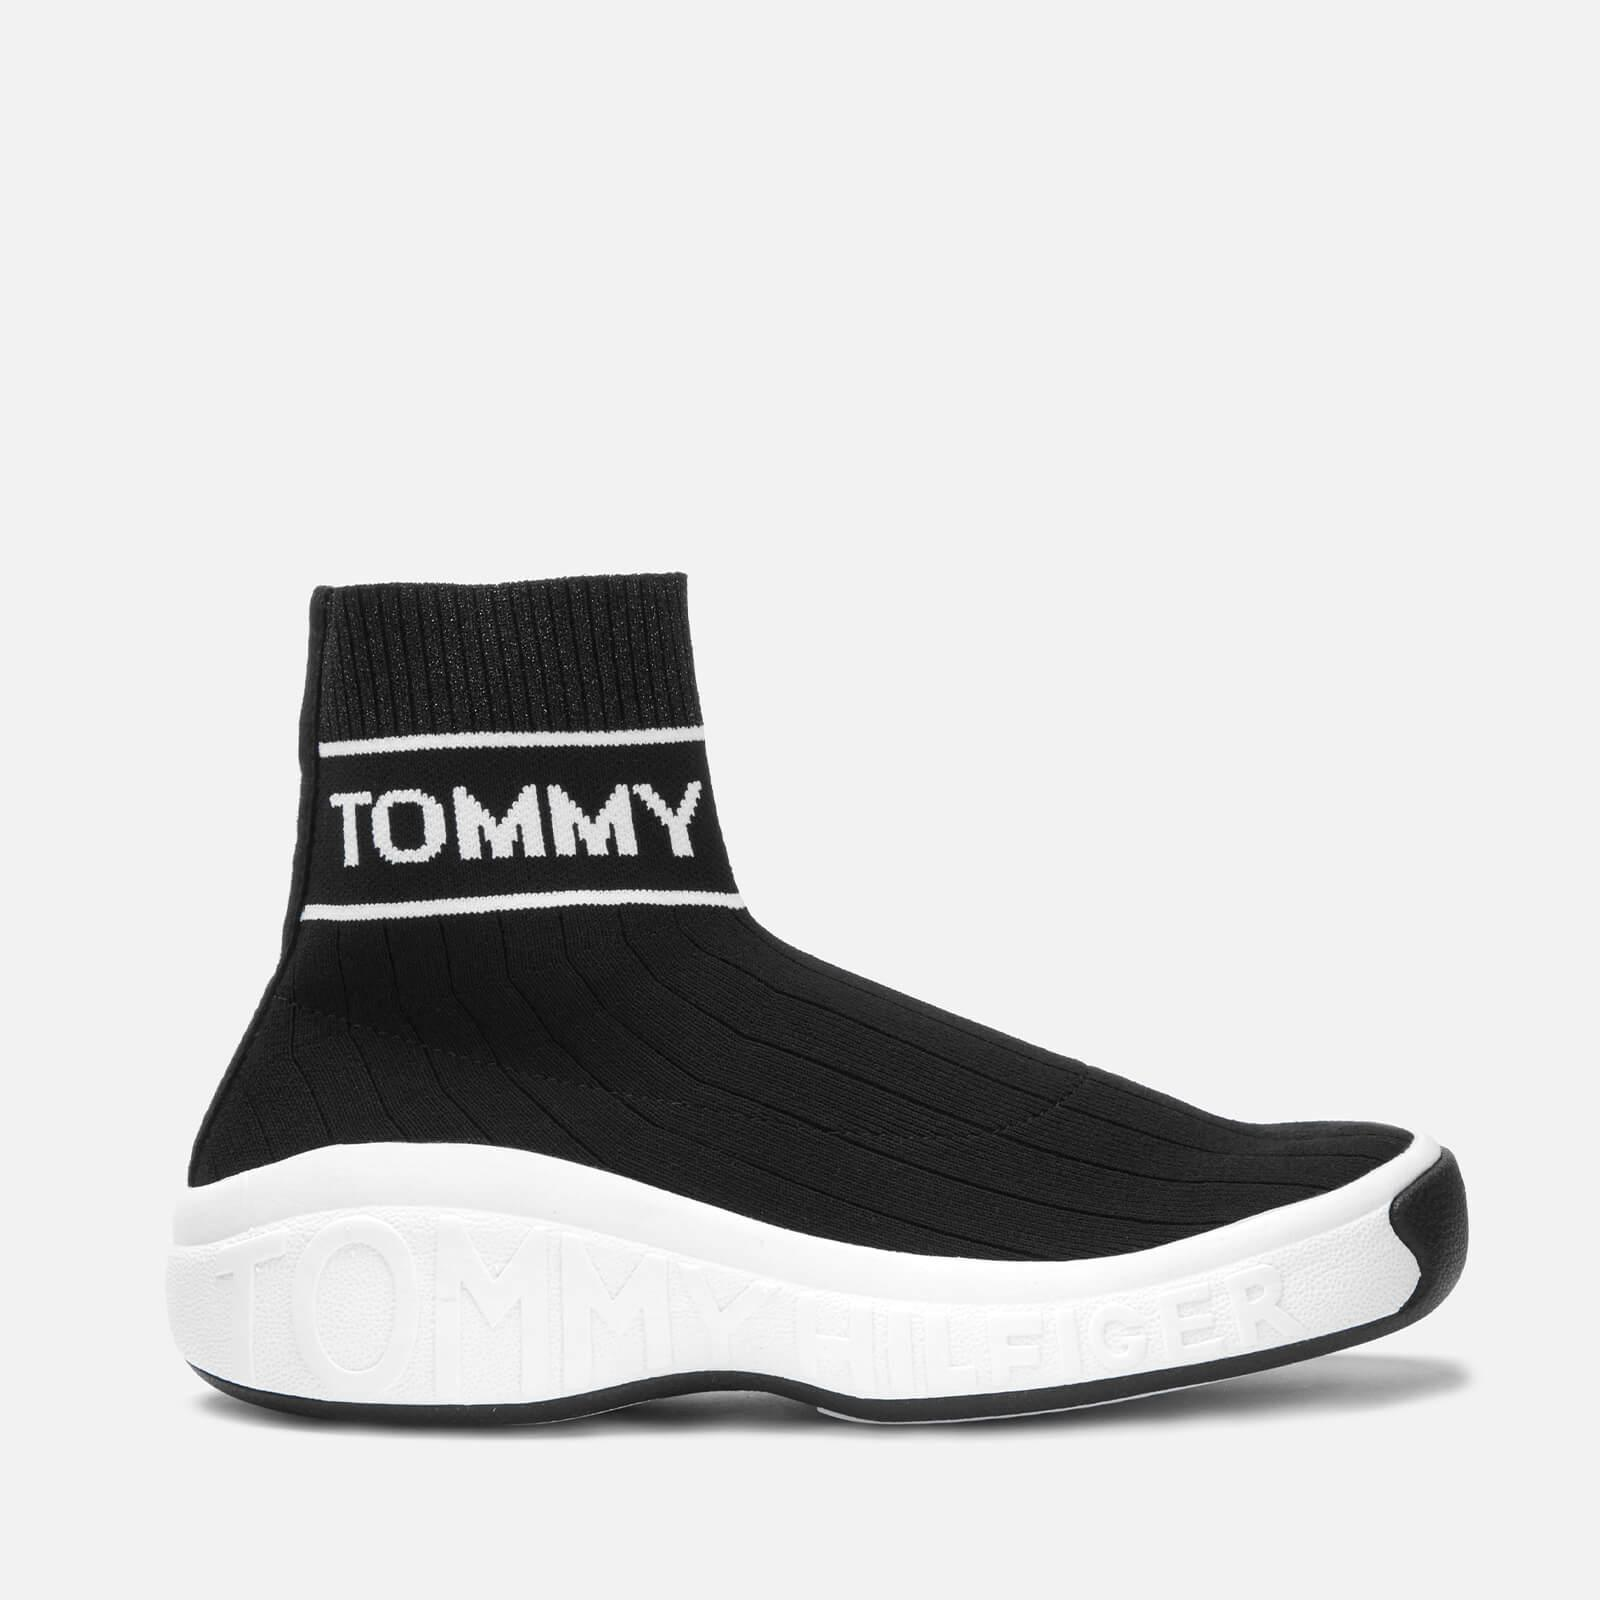 Tommy Hilfiger Suede Knit Sock Boot